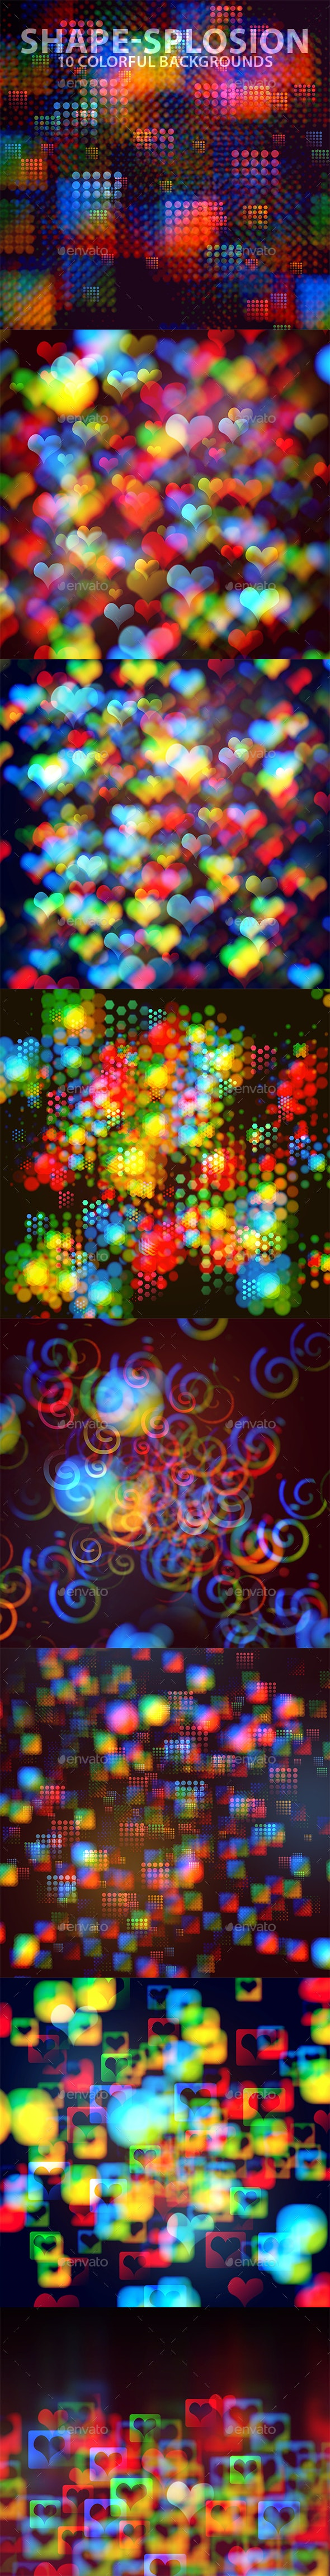 ShapeSplosion Colorful Background Set - Miscellaneous Backgrounds